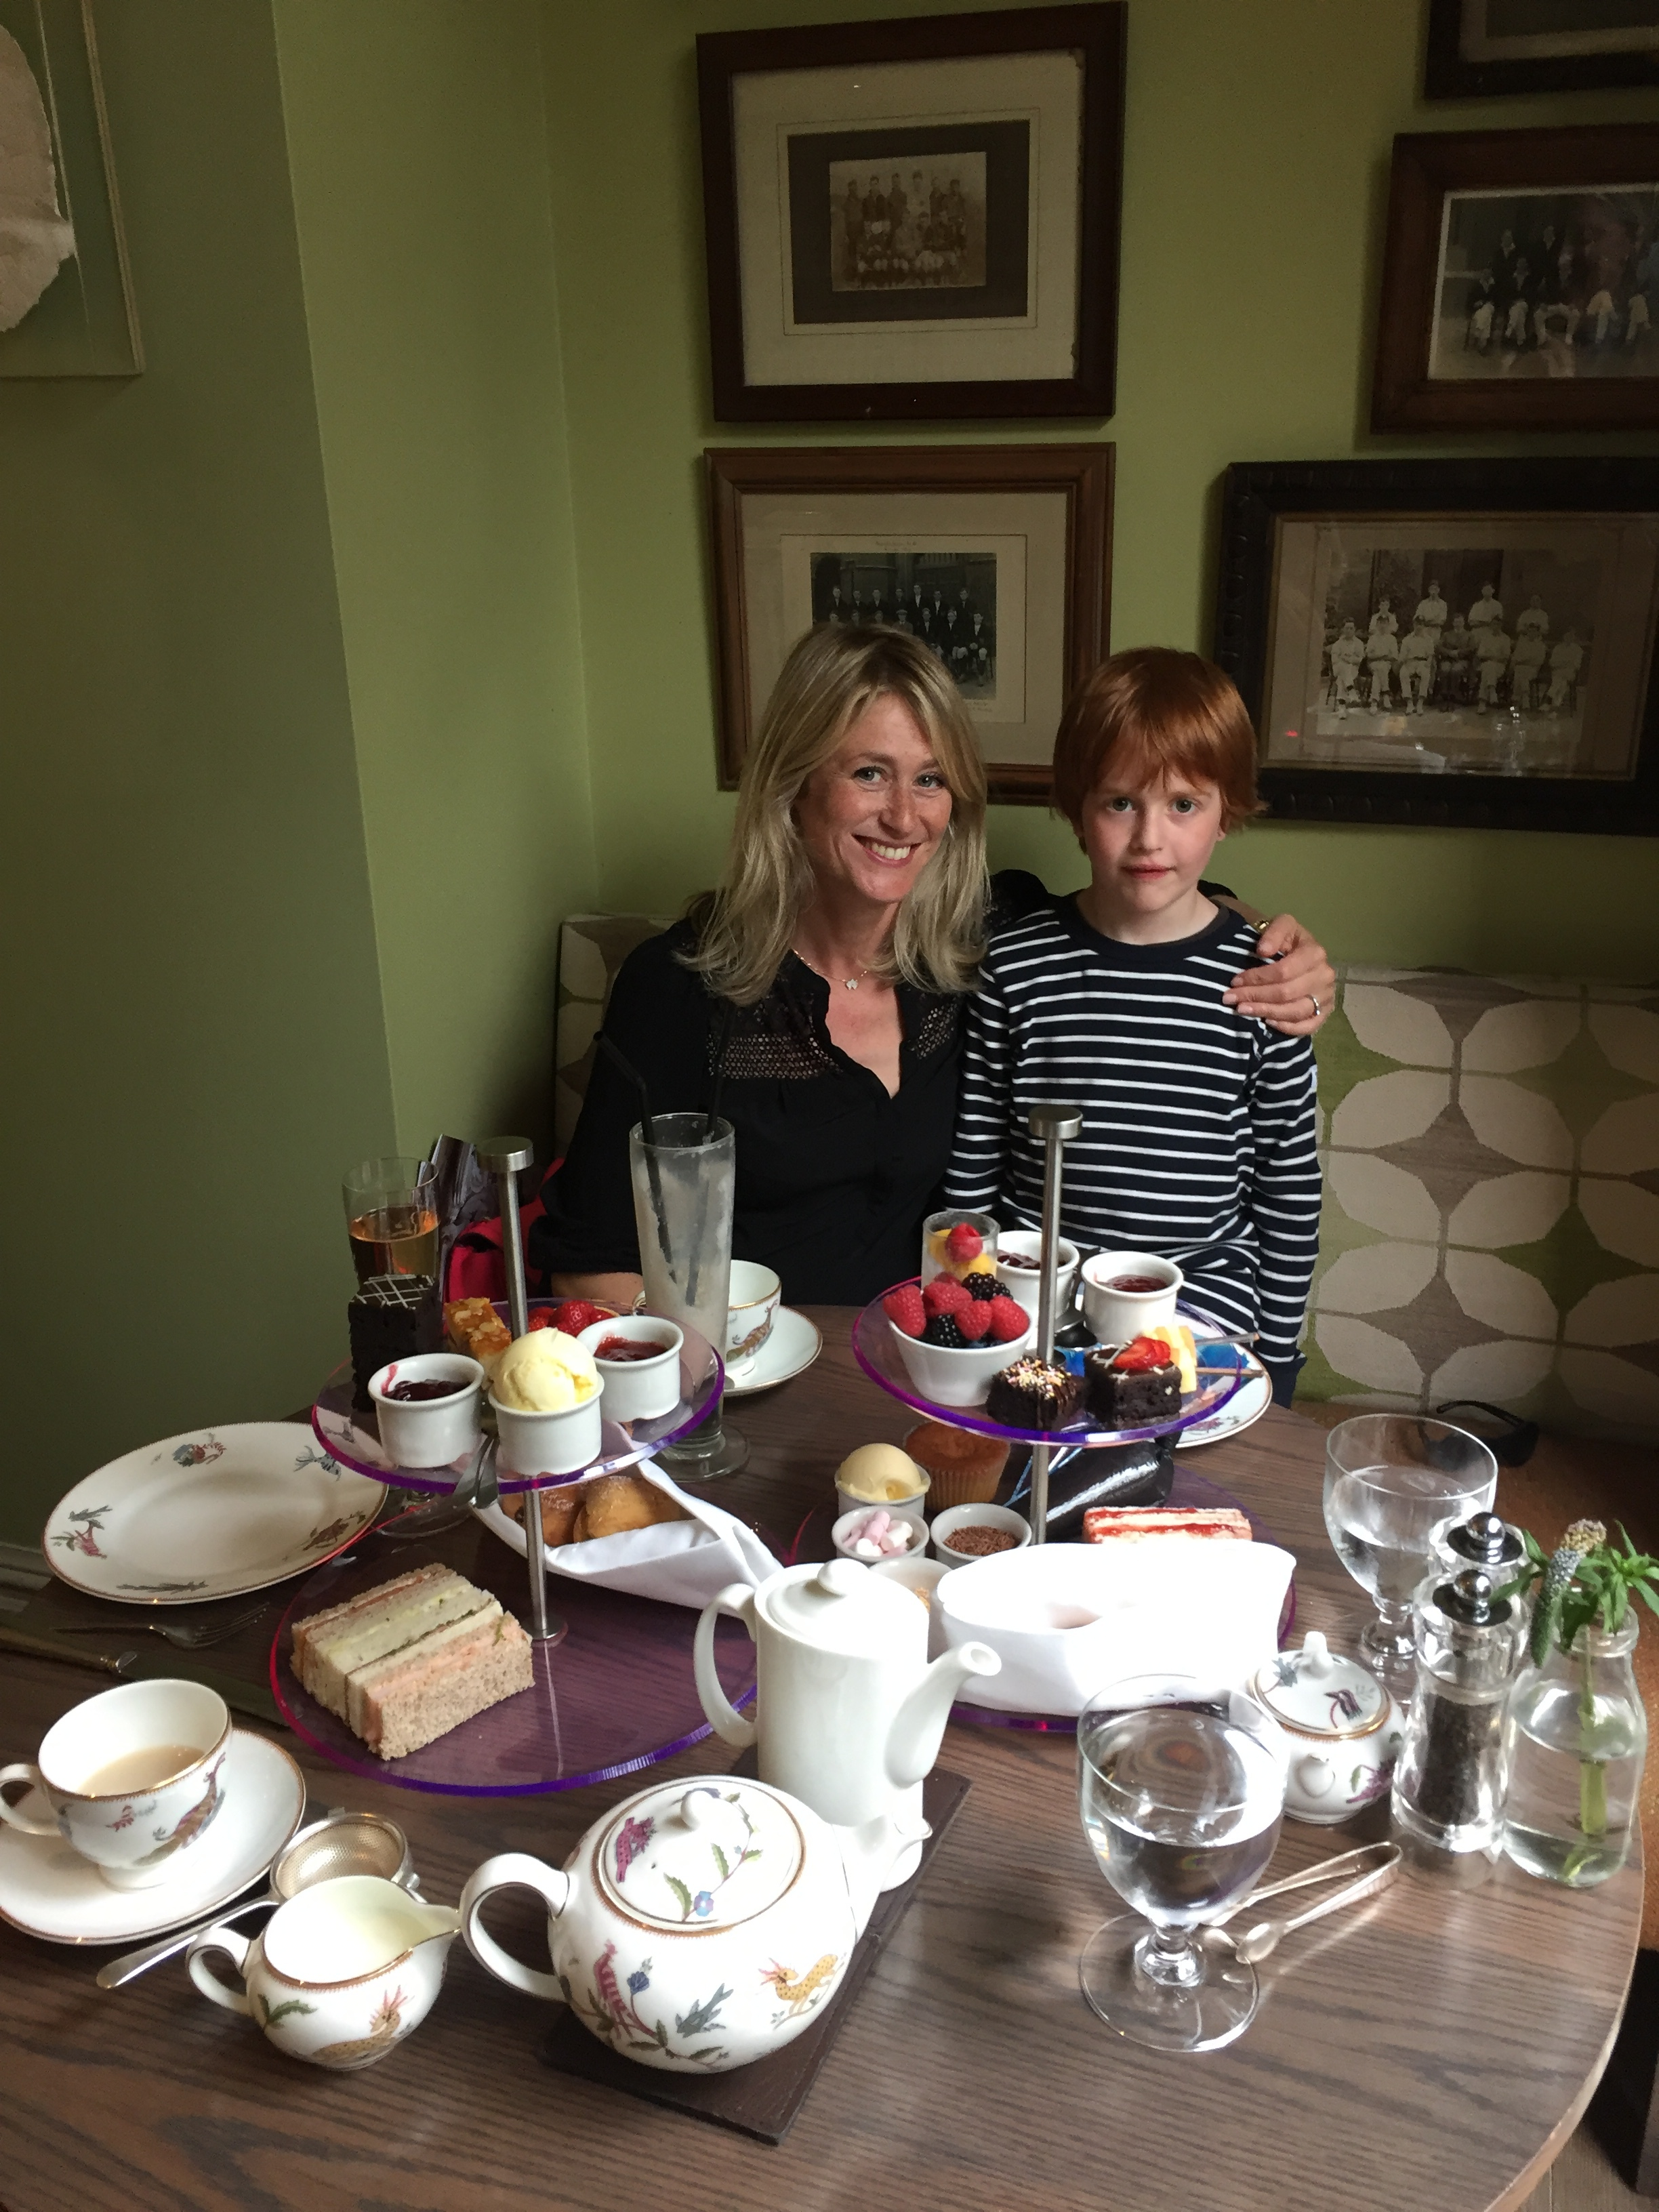 Mum and son day out in London